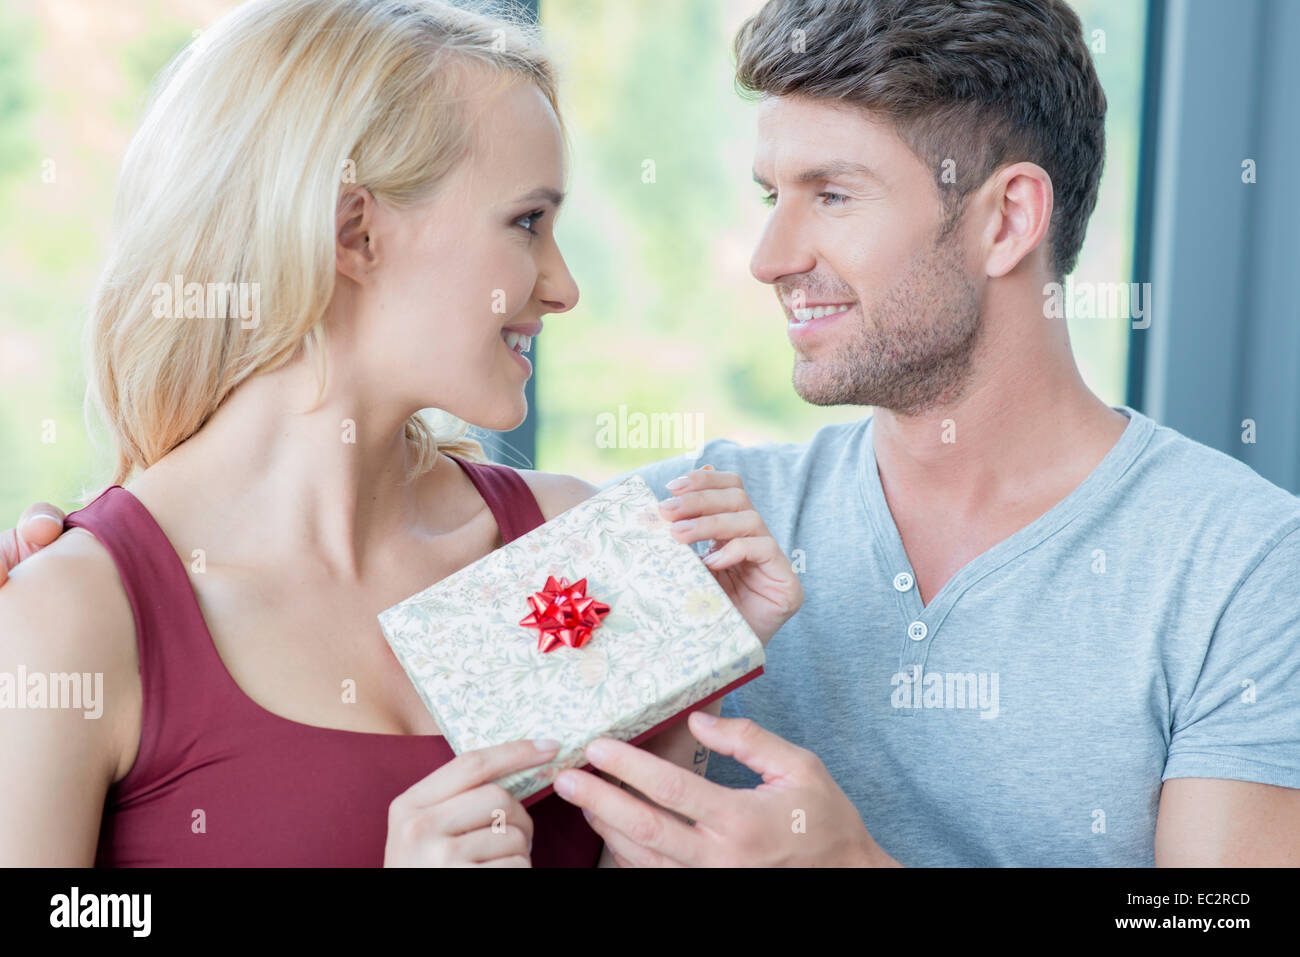 Loving man giving his wife a gift - Stock Image